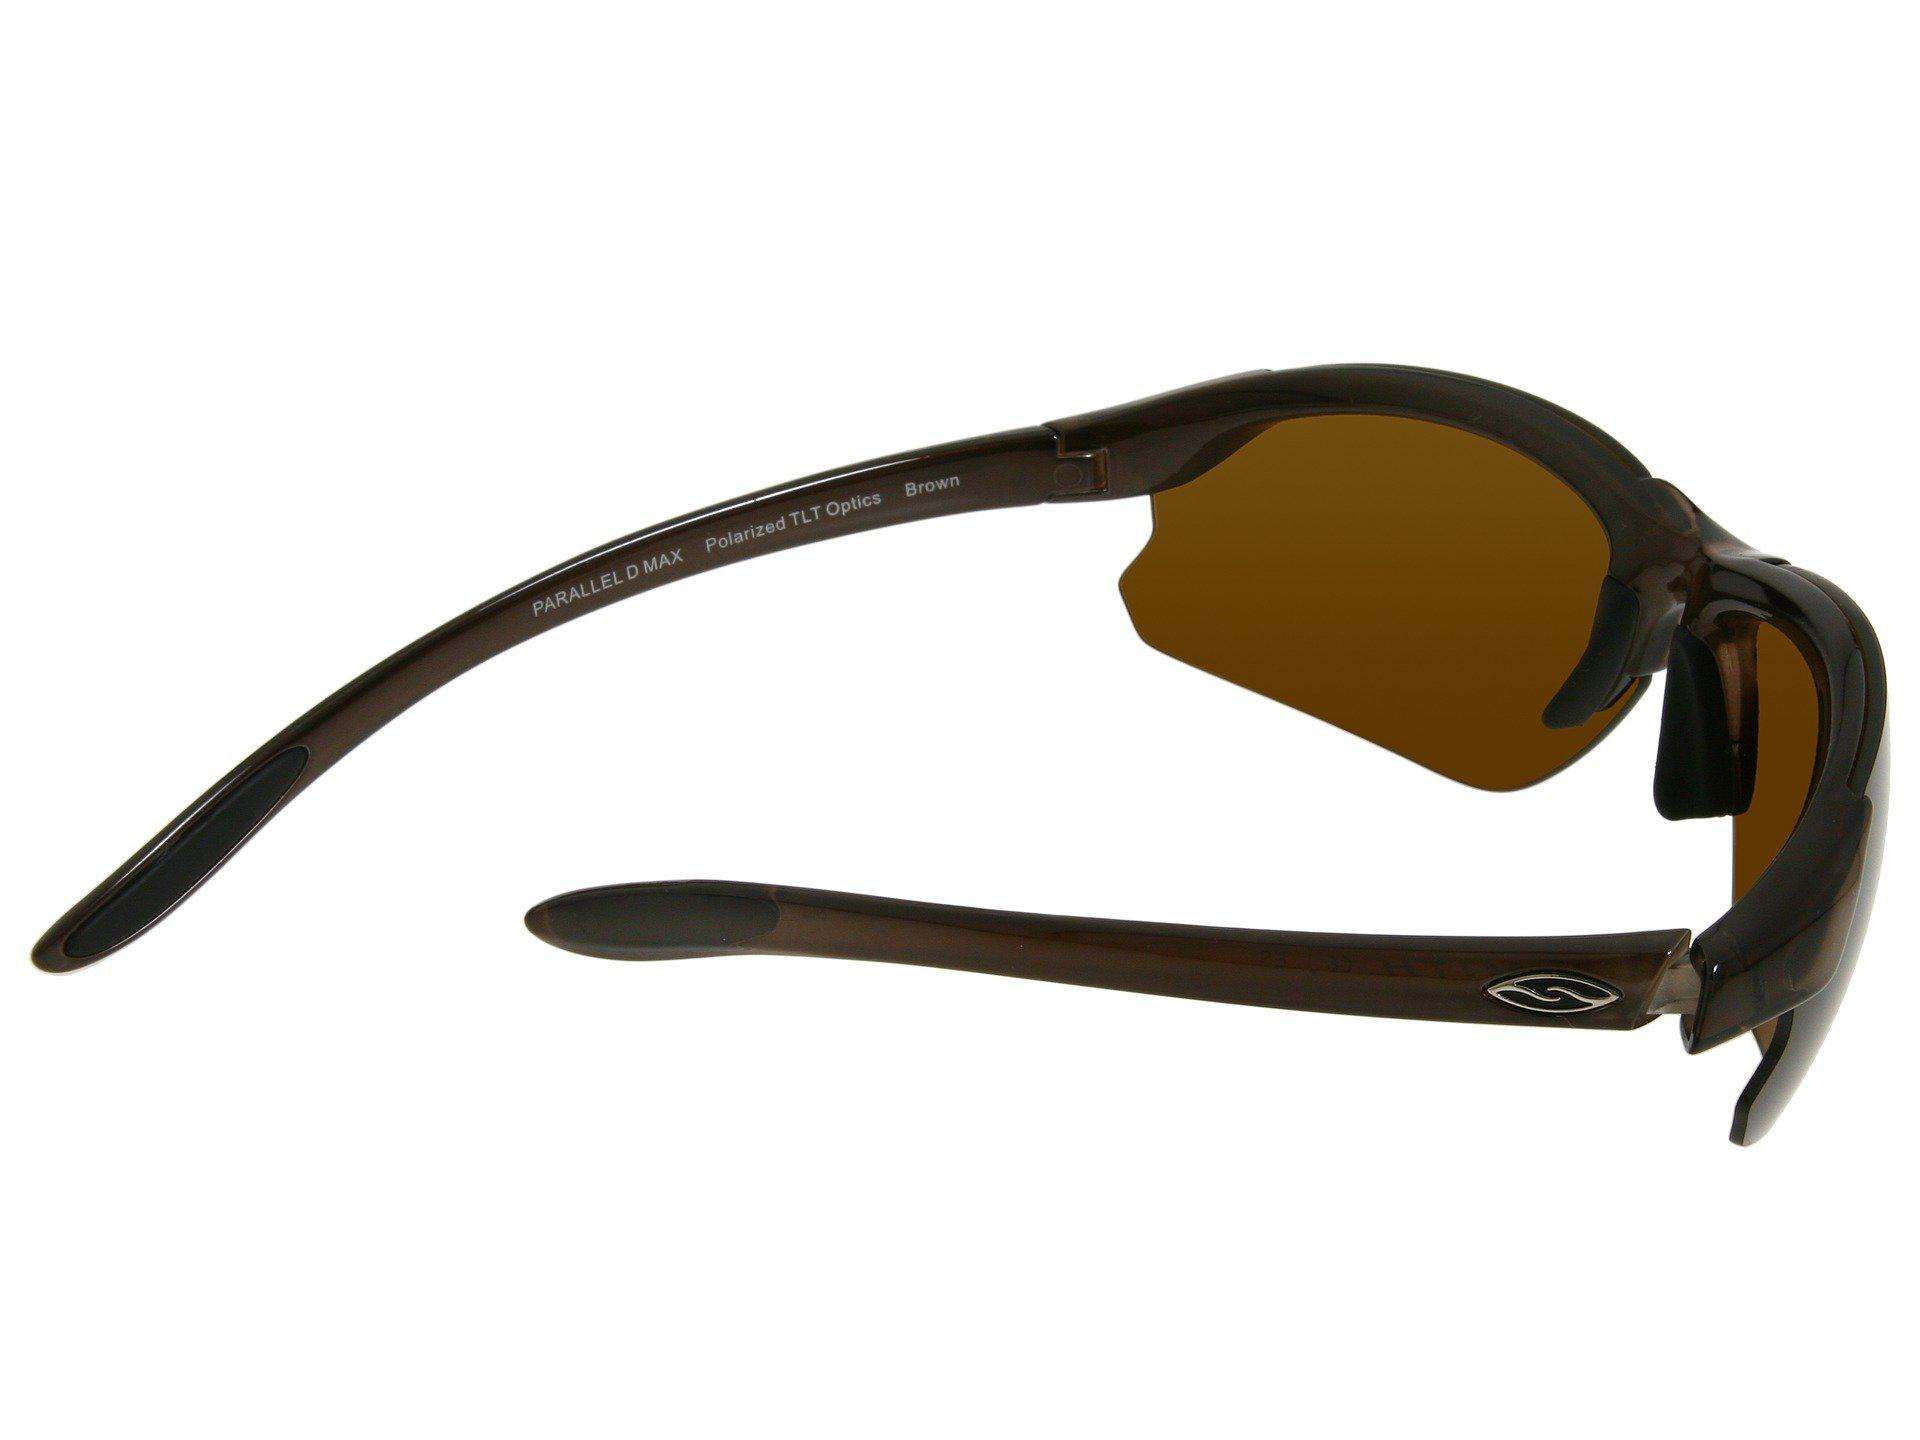 66d54fedaa0 Smith Optics - Parallel D-max Polarized Lens (brown brown ignitor . View  fullscreen